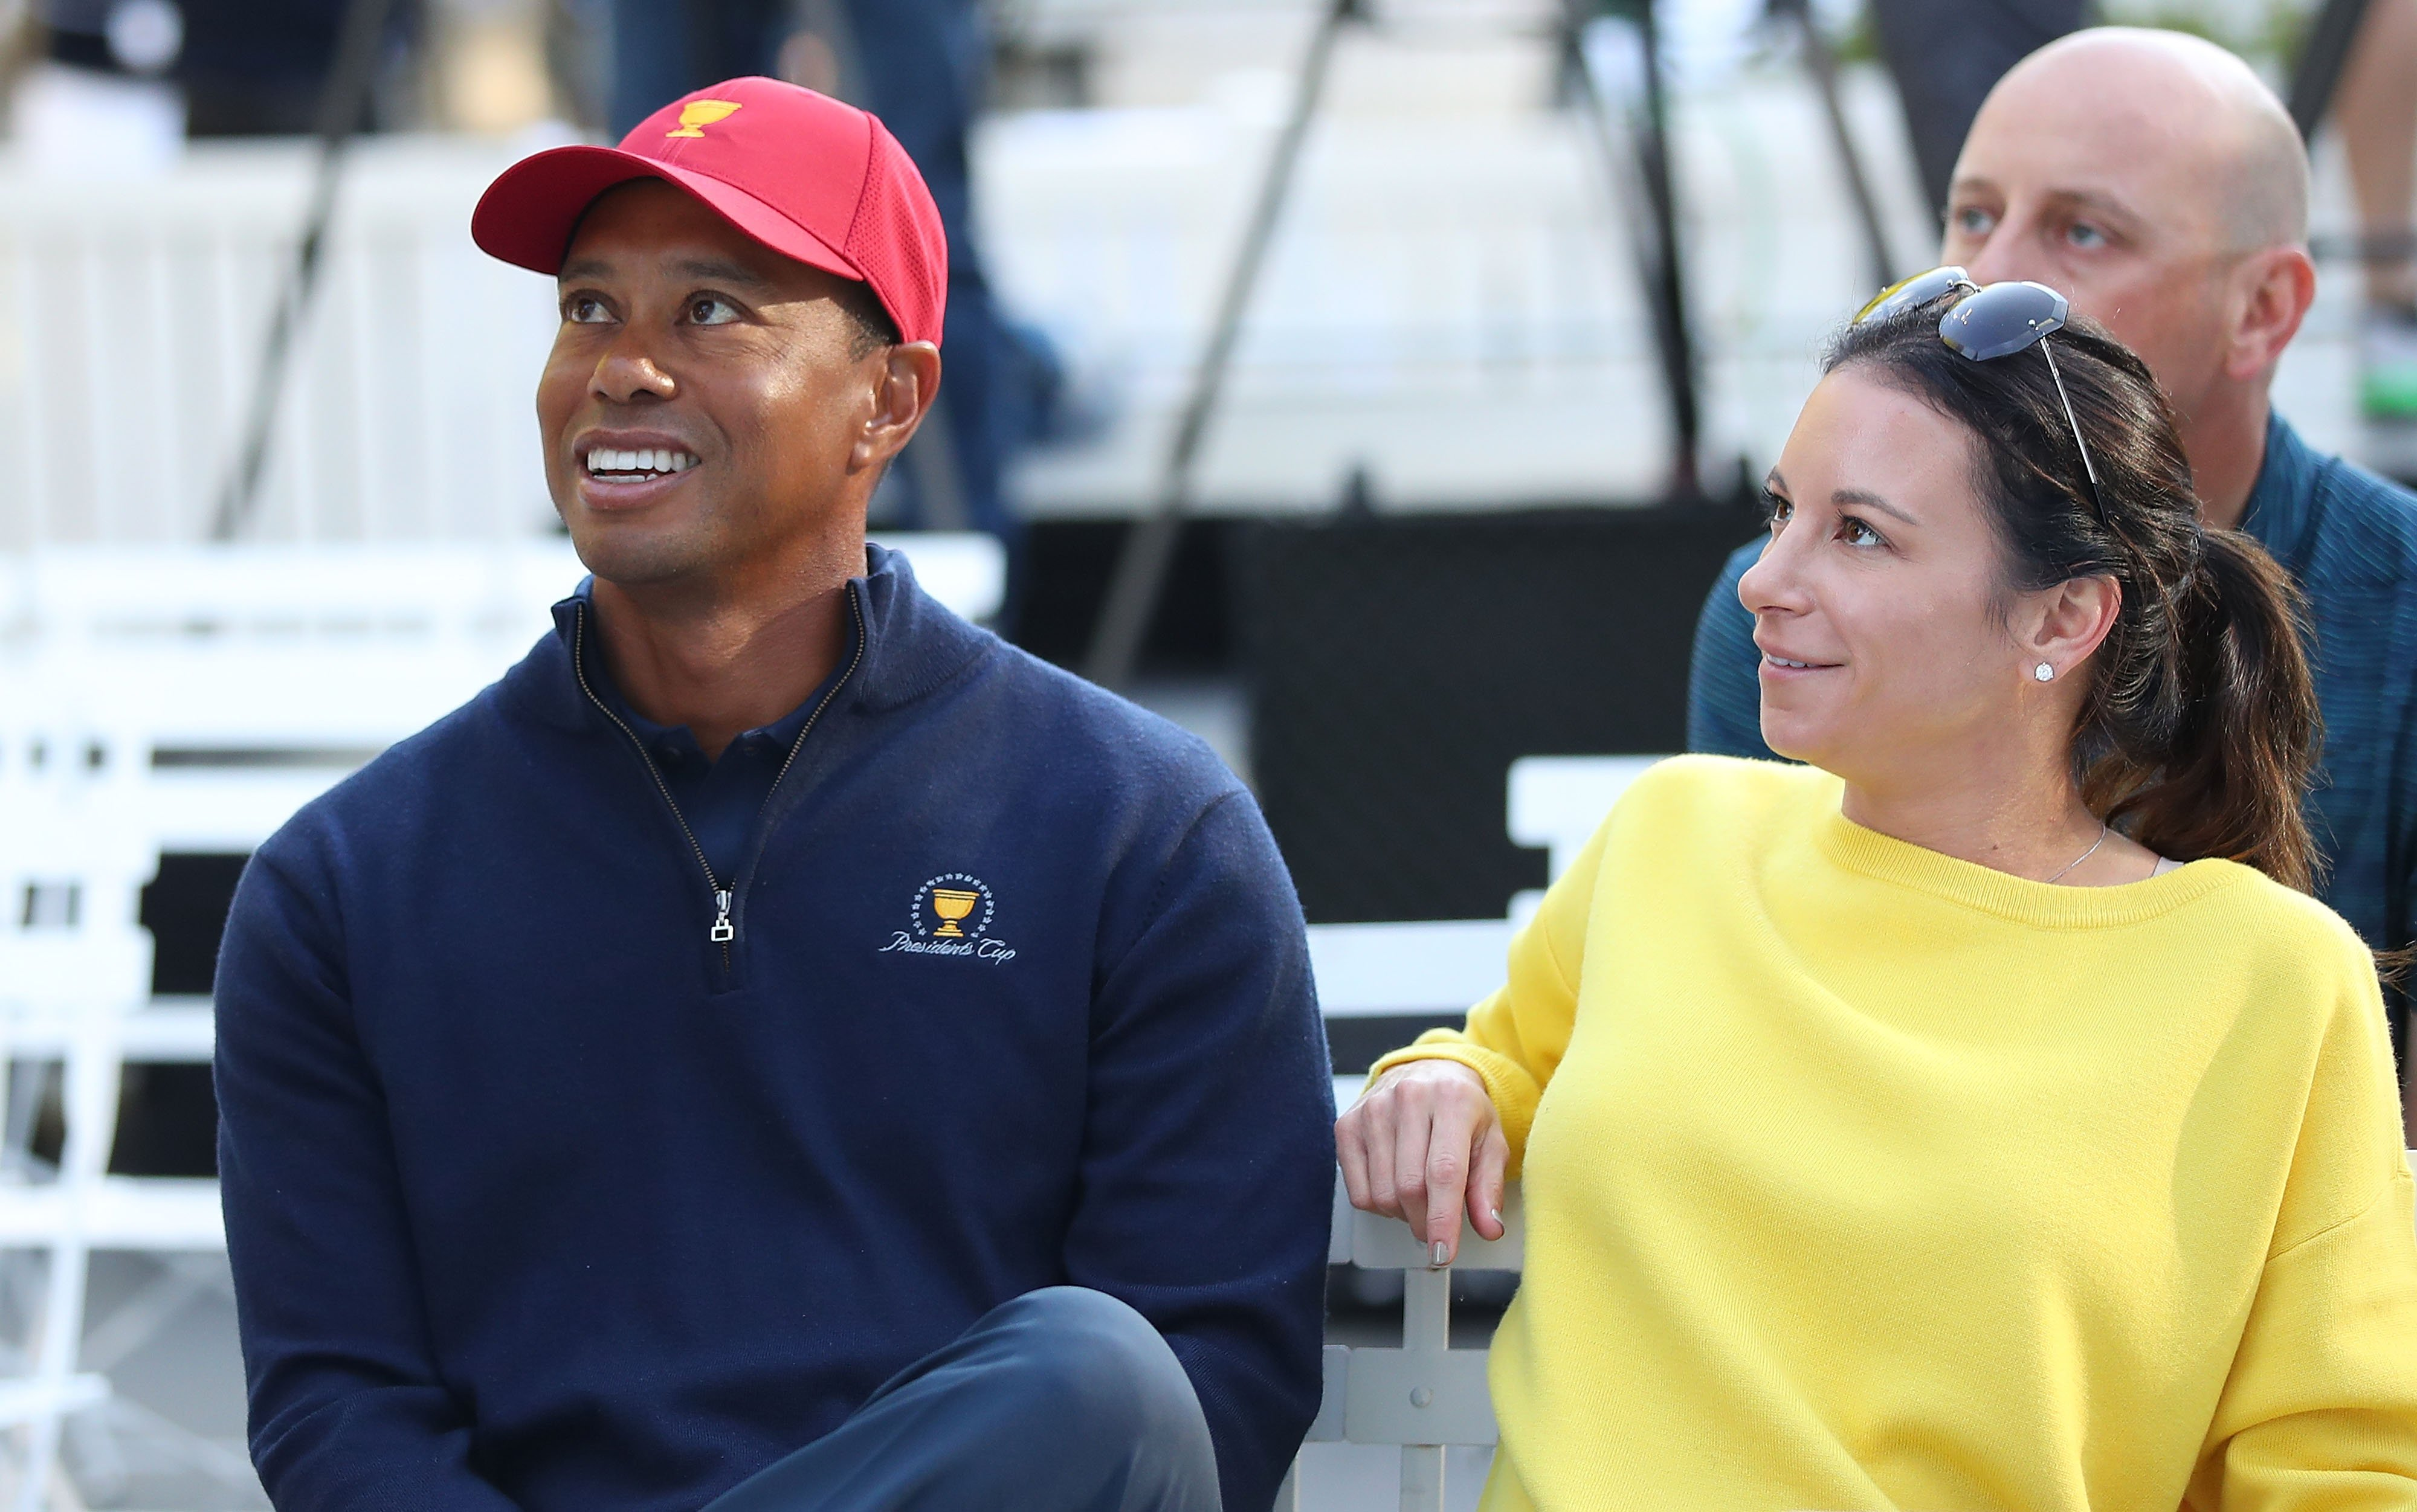 Tiger Woods and his girlfriend Erica Herman during the  Presidents Cup. December 5, 2018 in Melbourne, Australia. | Photo: GettyImages